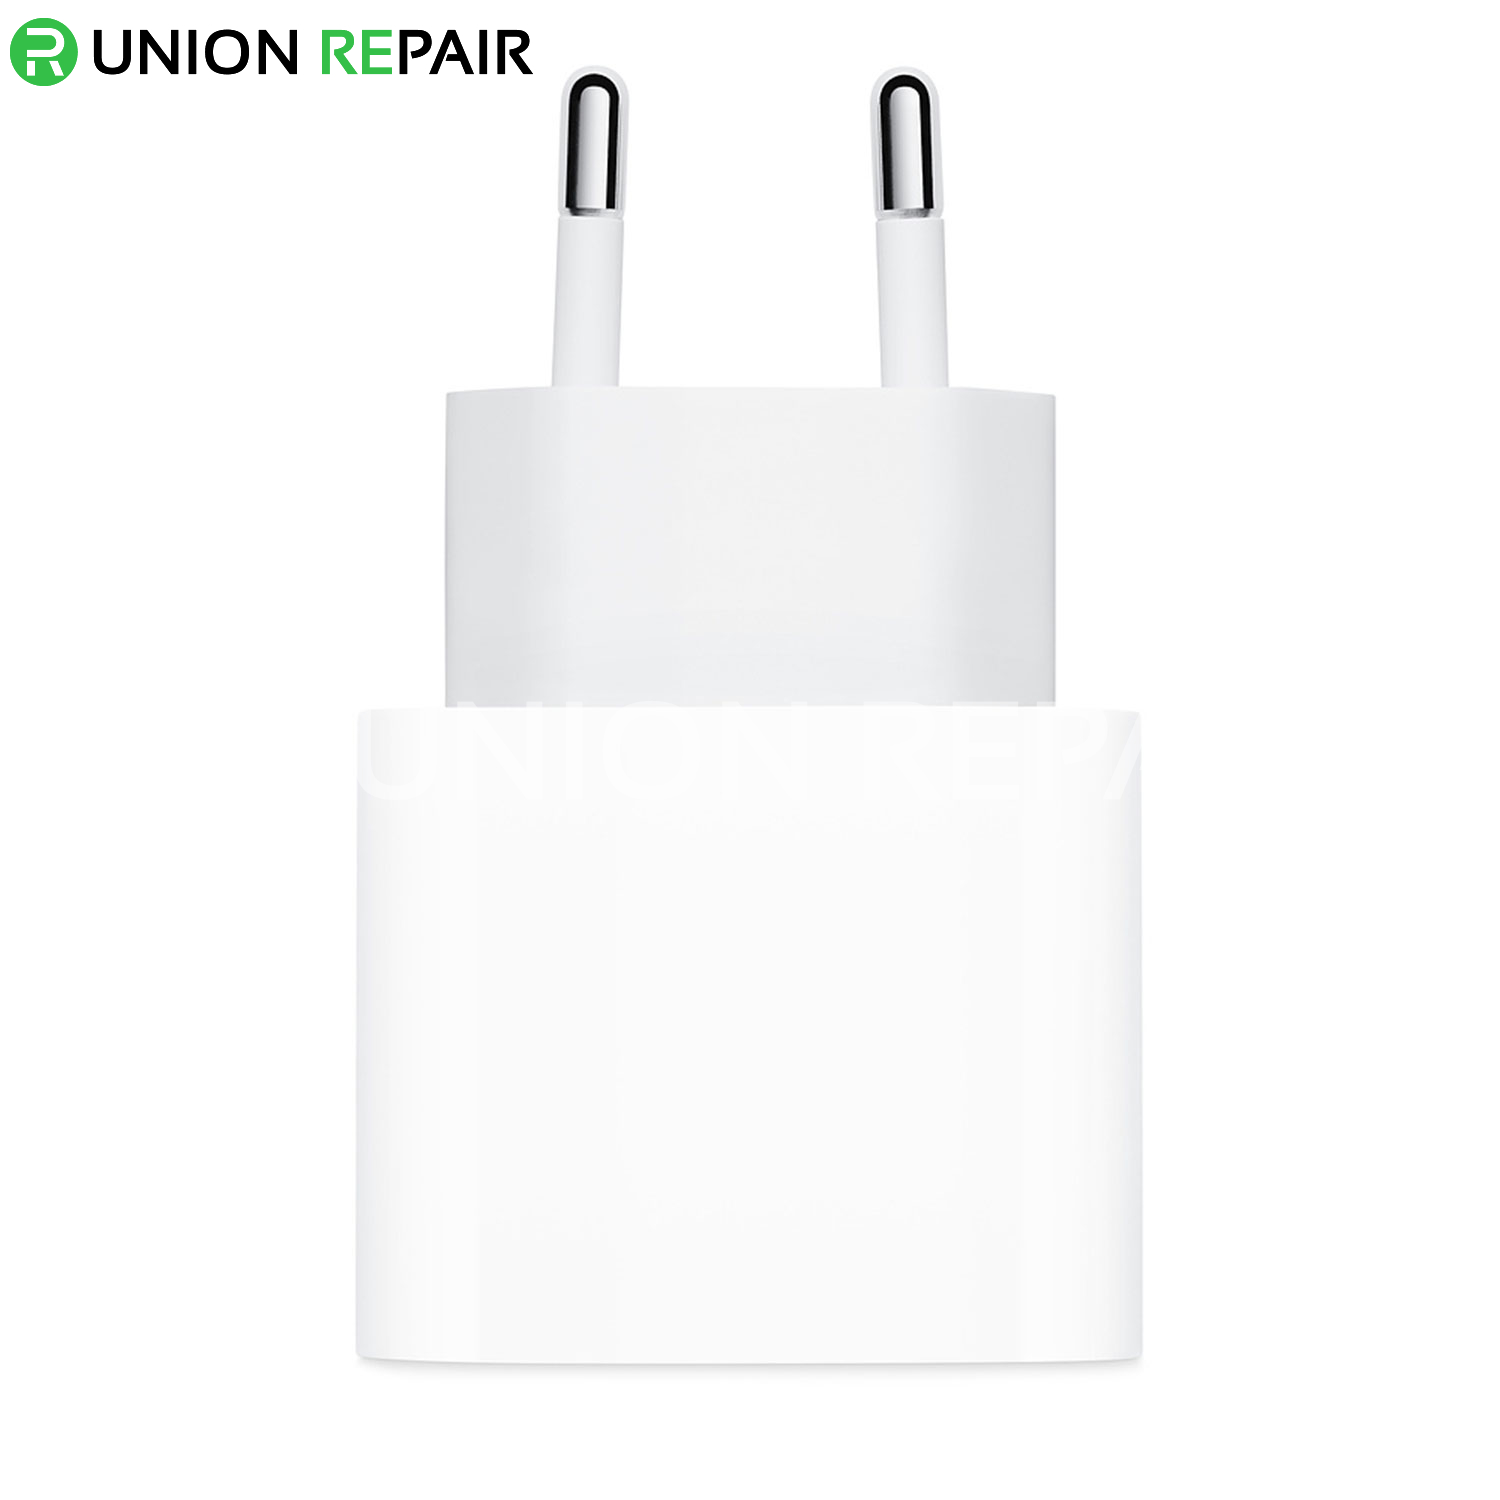 20W USB-C Power Adapter for iPhone - EU Version, fig. 2